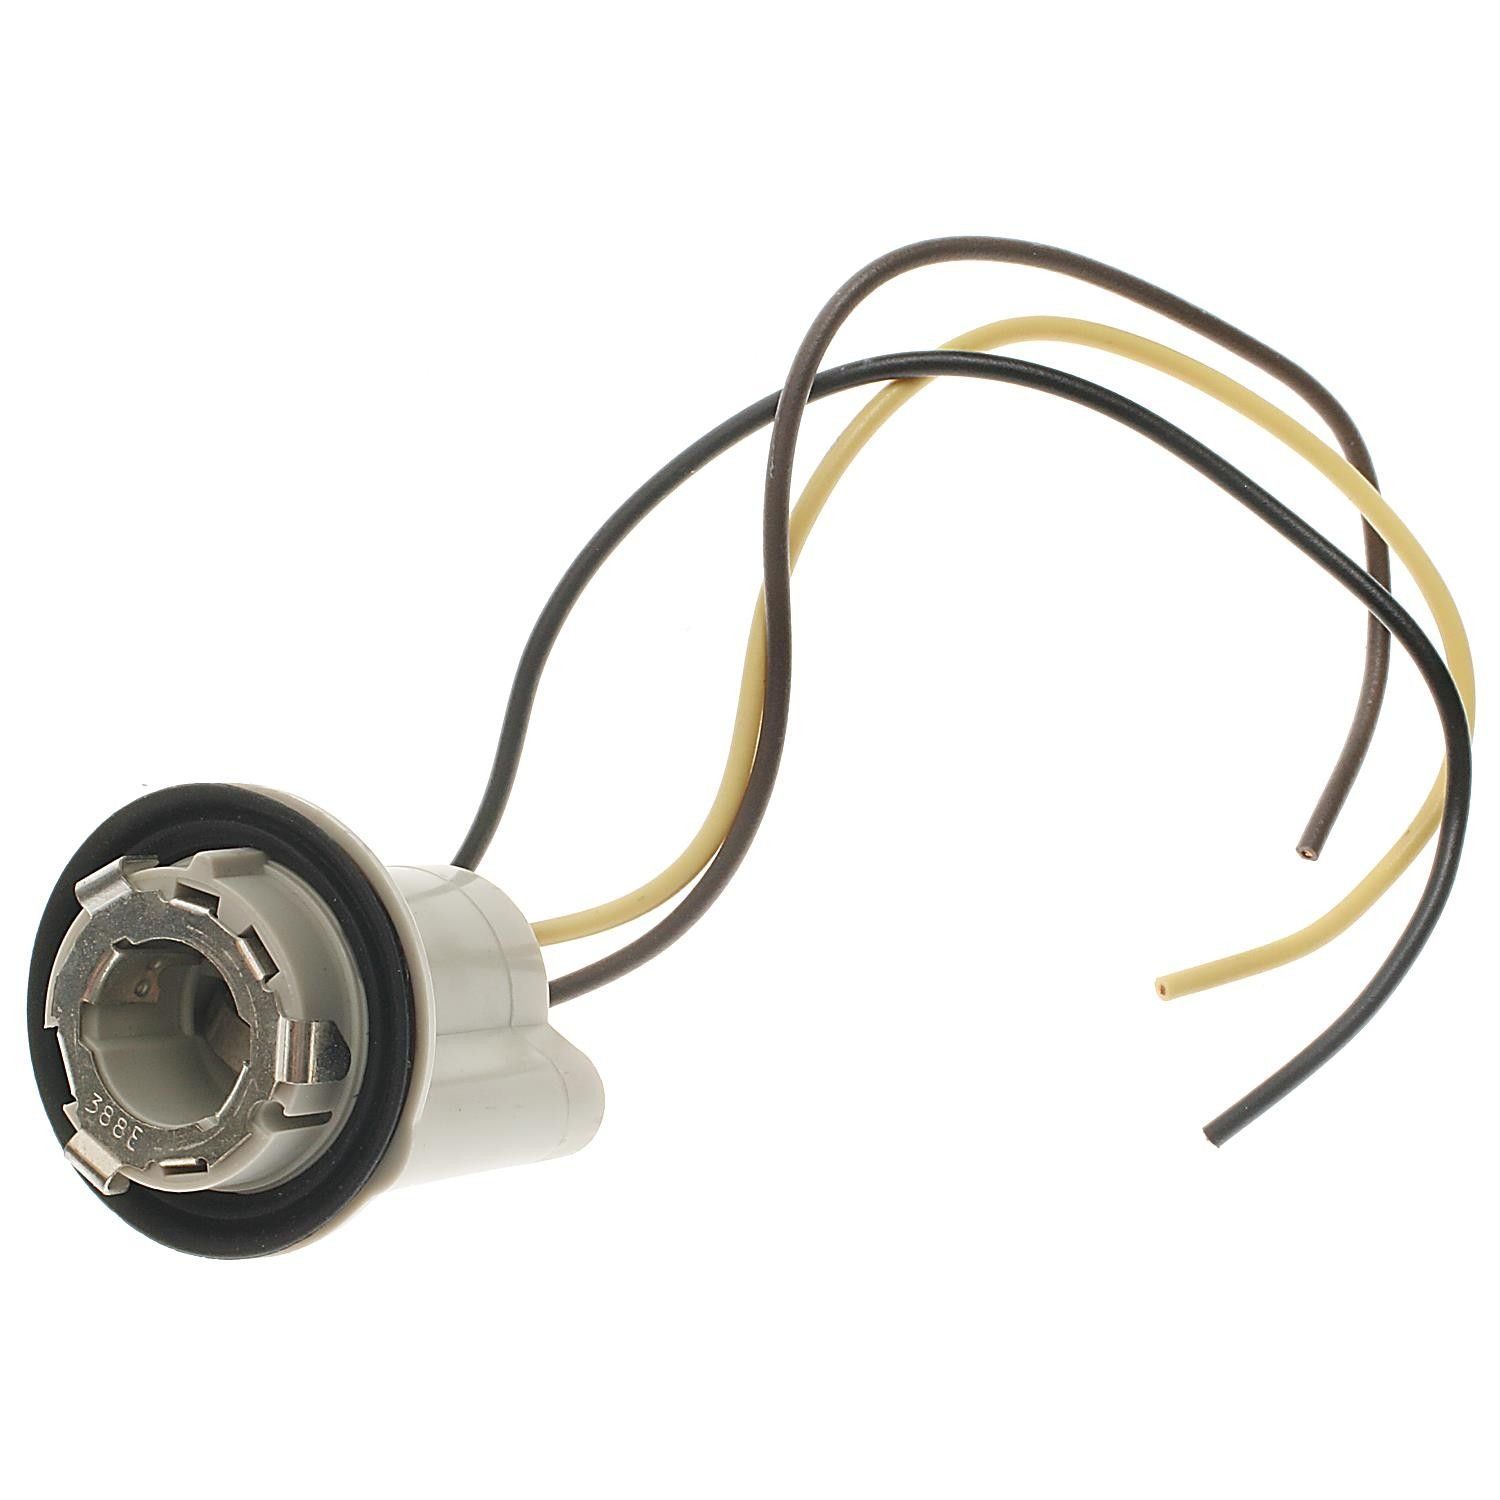 Chevrolet Impala Tail Lamp Socket Replacement Motormite Standard 1958 Chevy Light Wiring 1980 Ignition Hp4660 With Straight 3 Wire